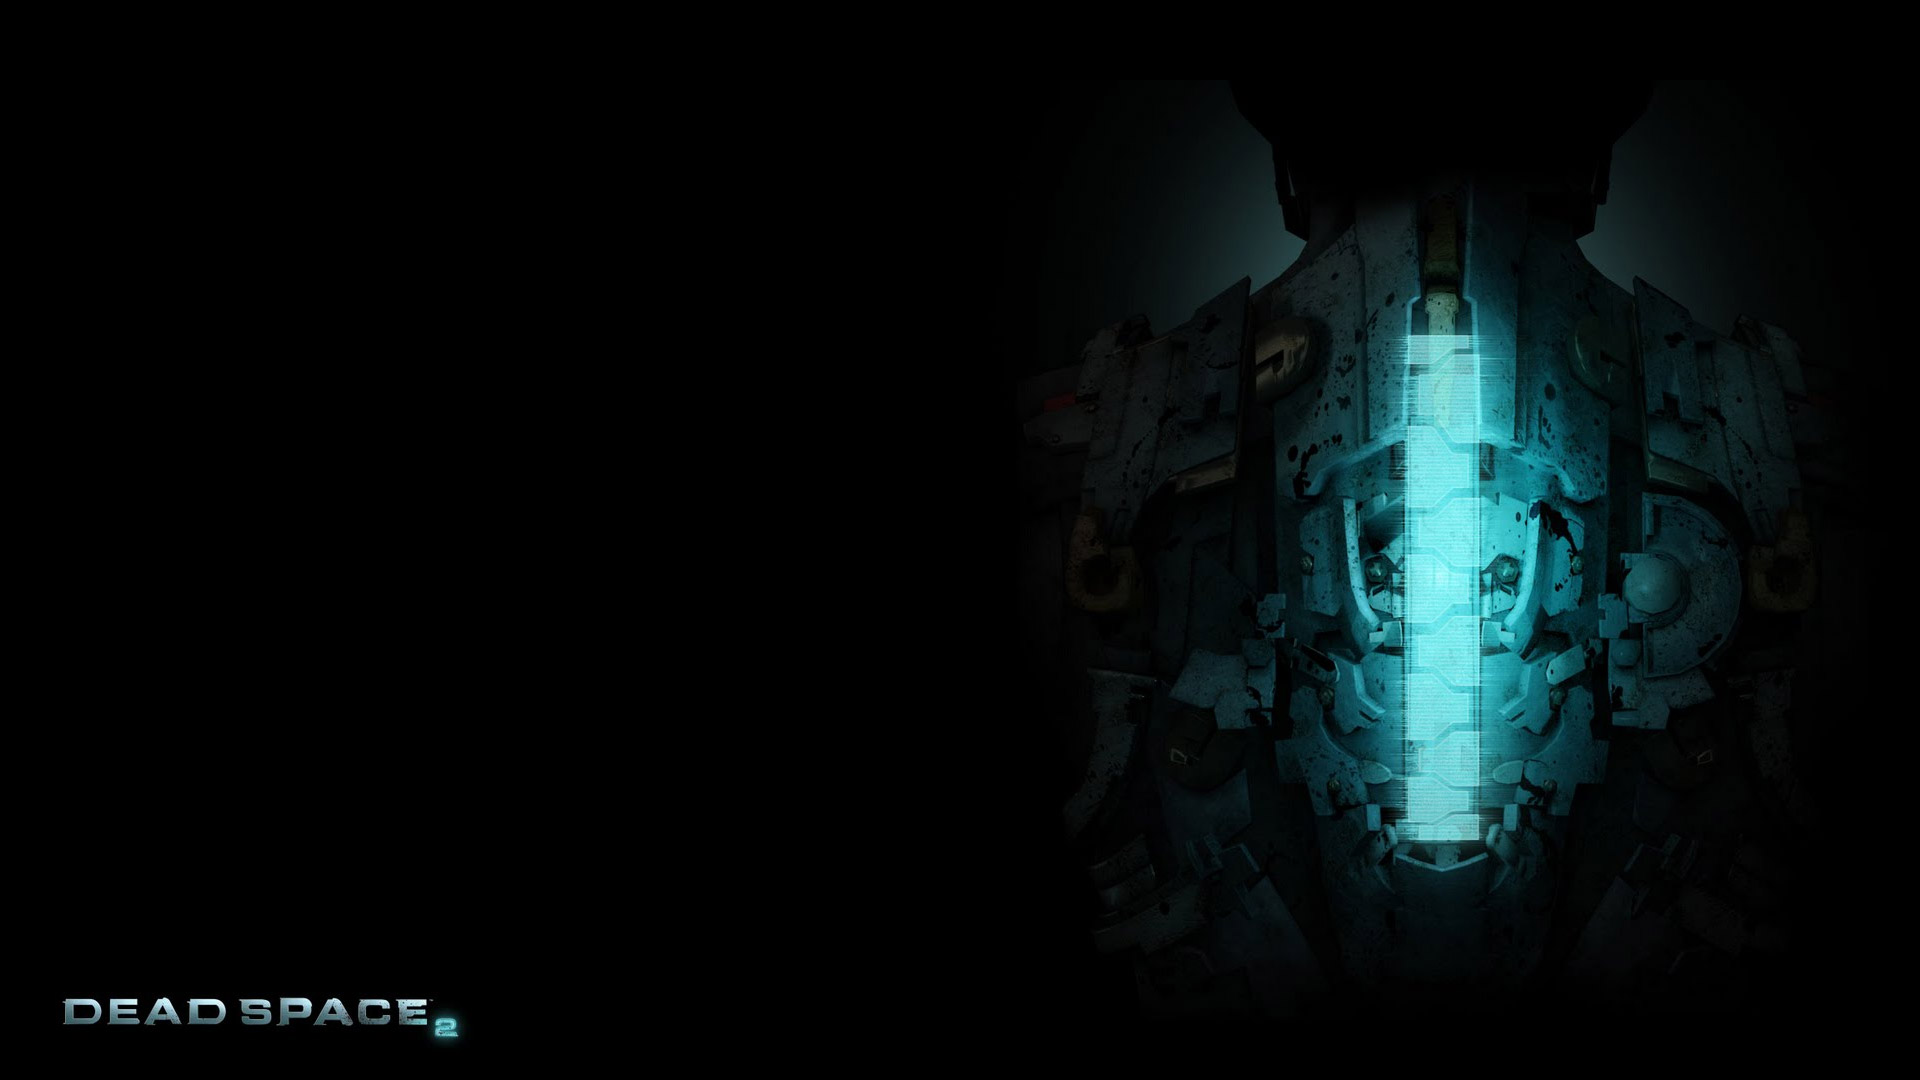 Dead Space 2 1080p Wallpaper Dead Space 2 720p Wallpaper 1920x1080